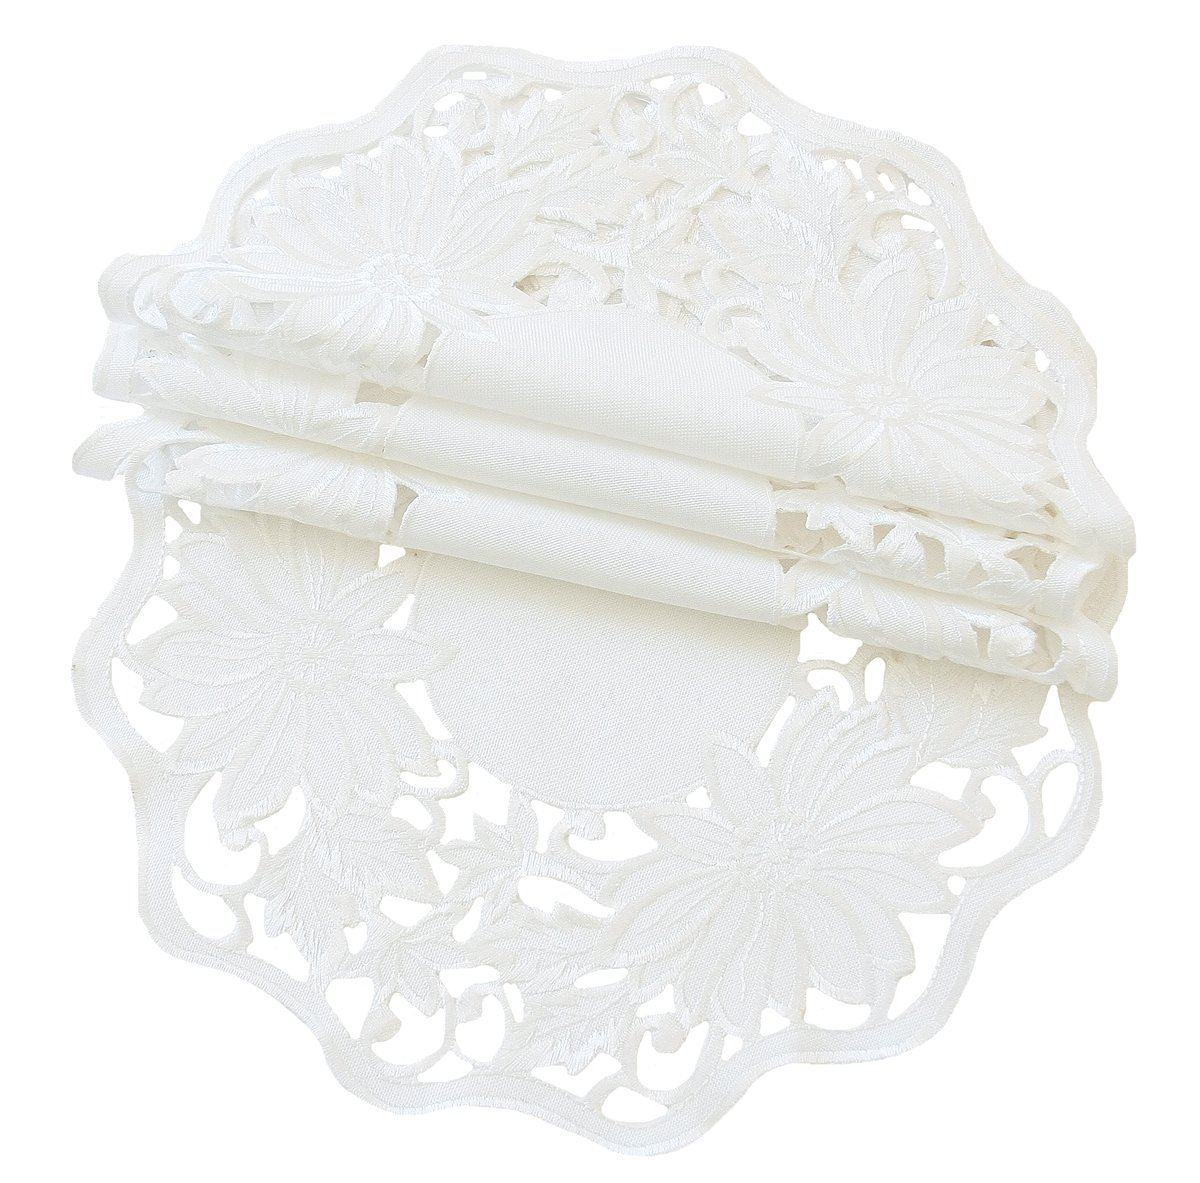 Xia Home Fashions Daisy Garden Embroidered Cutwork Spring Doilies, 12-Inch Round, White, Set of 4